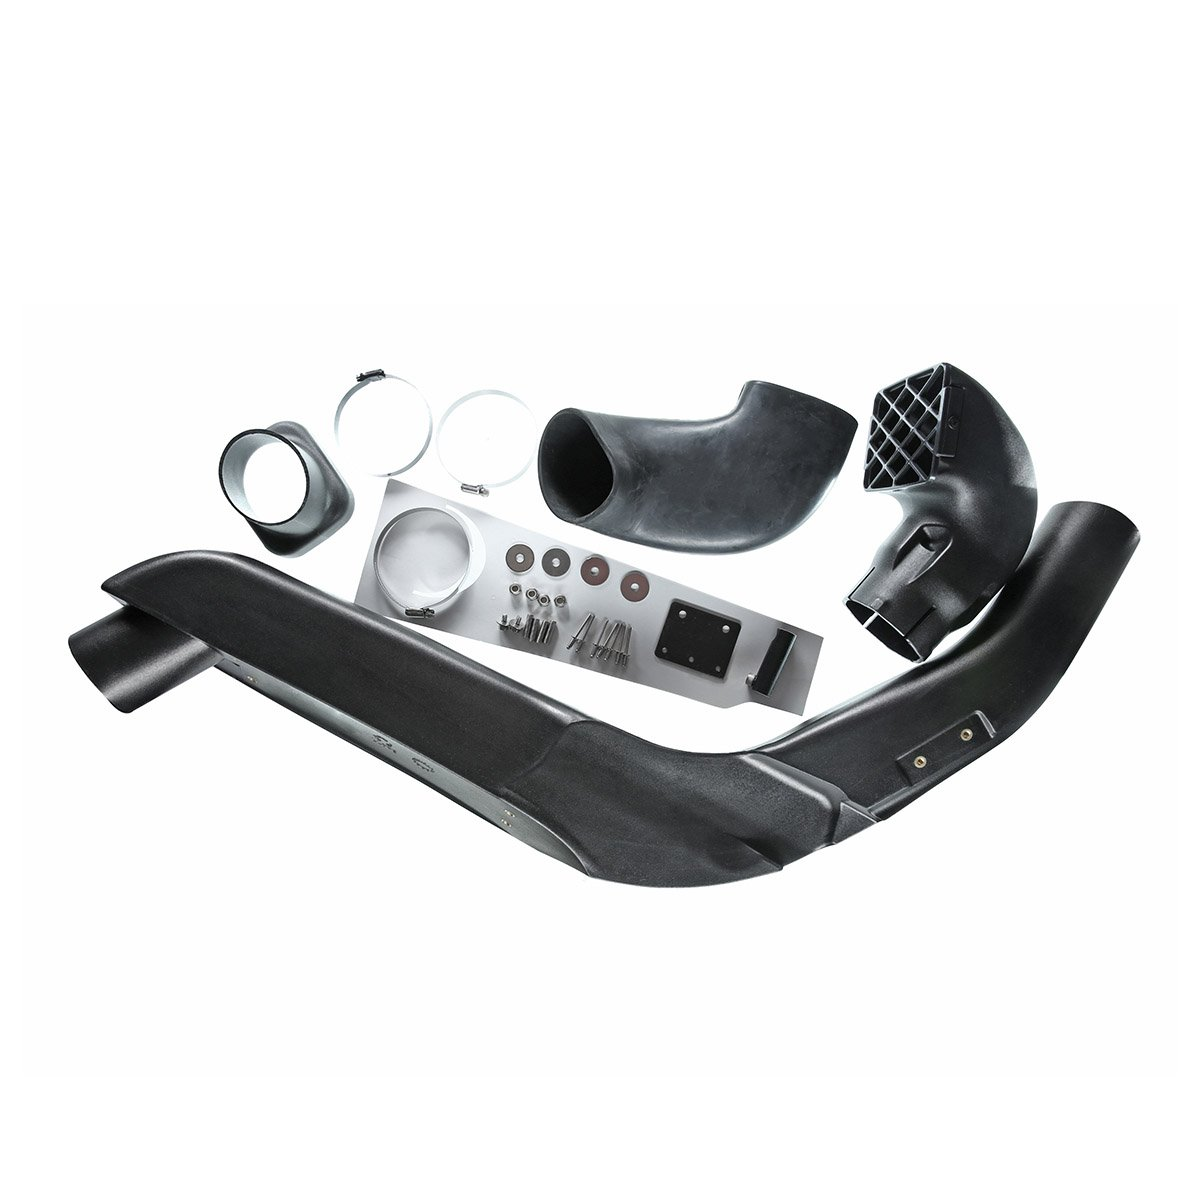 A-Premium Air Ram Intake Snorkel Kit for Hummer H3 H3T 2008-2009 I53.7L Right Hand Passenger Side 4x4 Off Road by A-Premium